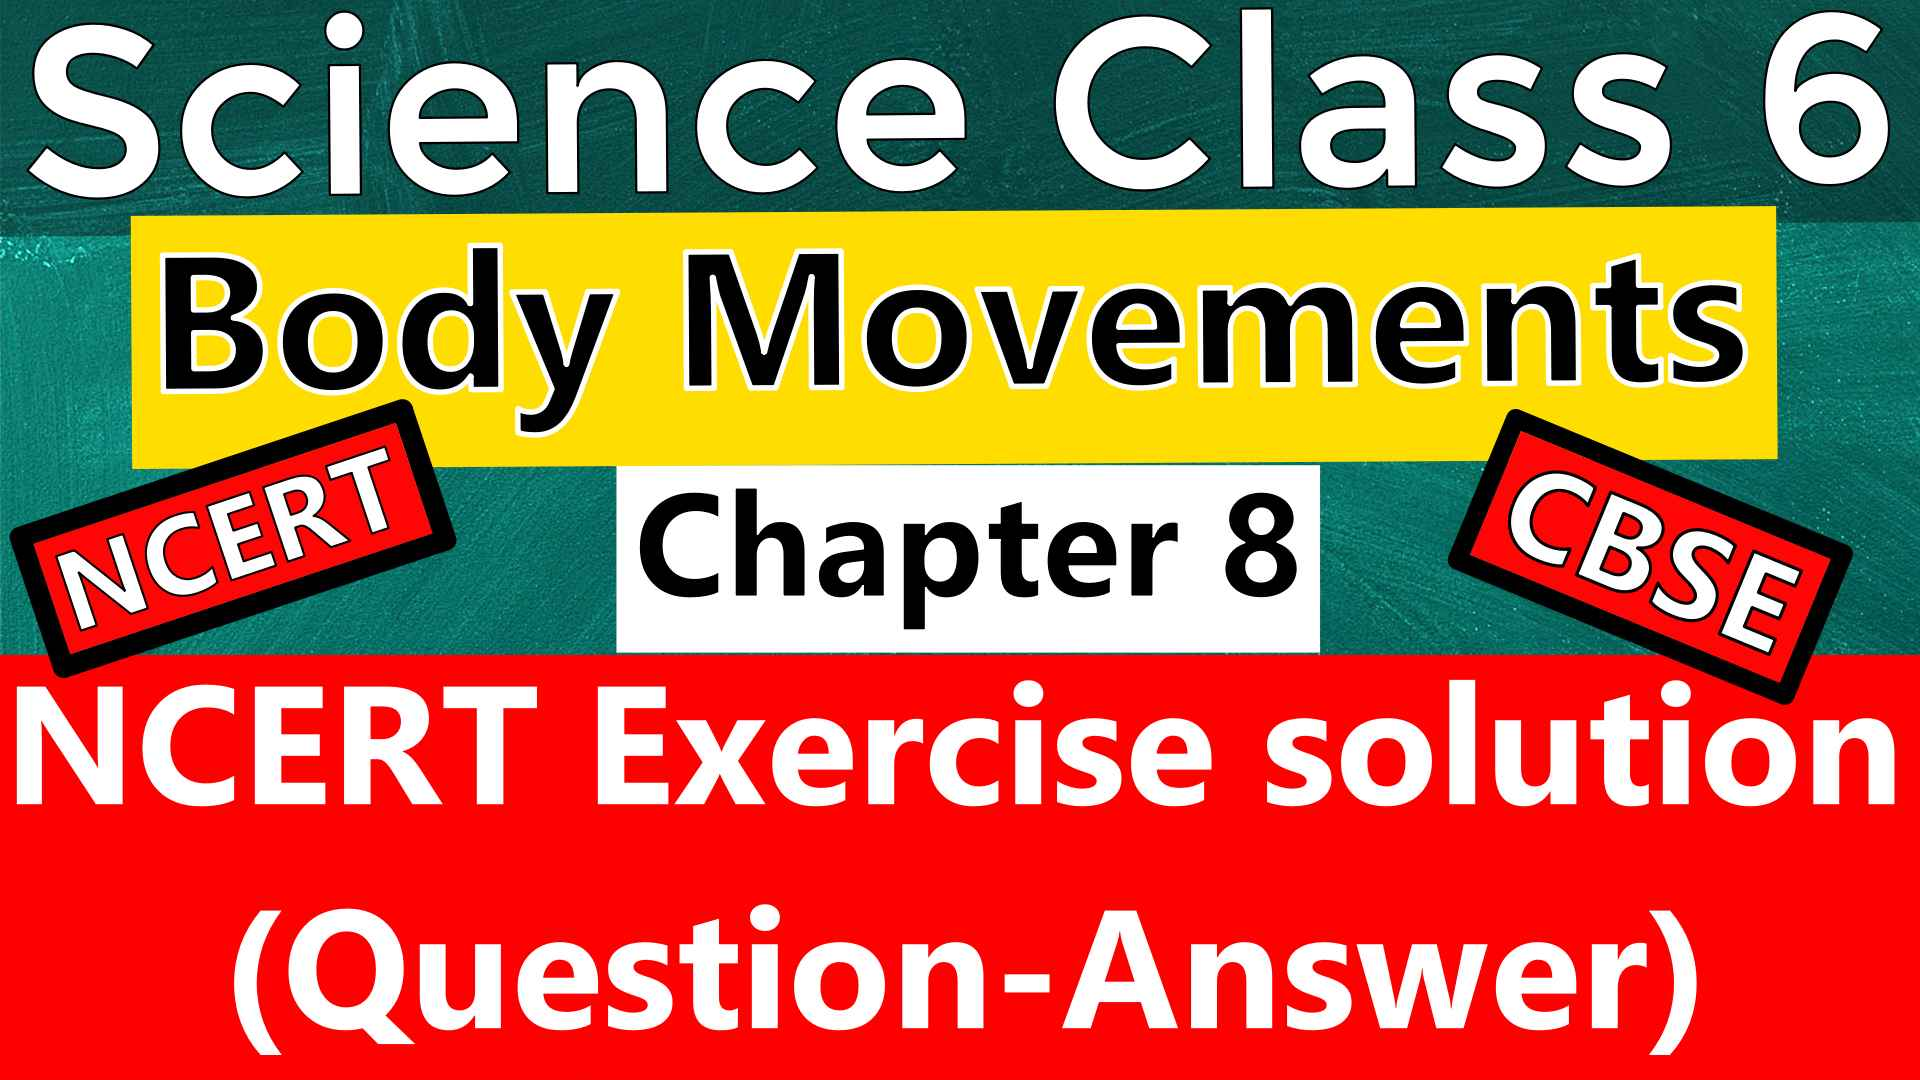 Science Class 6 - Chapter 8 - Body Movements - NCERT Exercise Solution